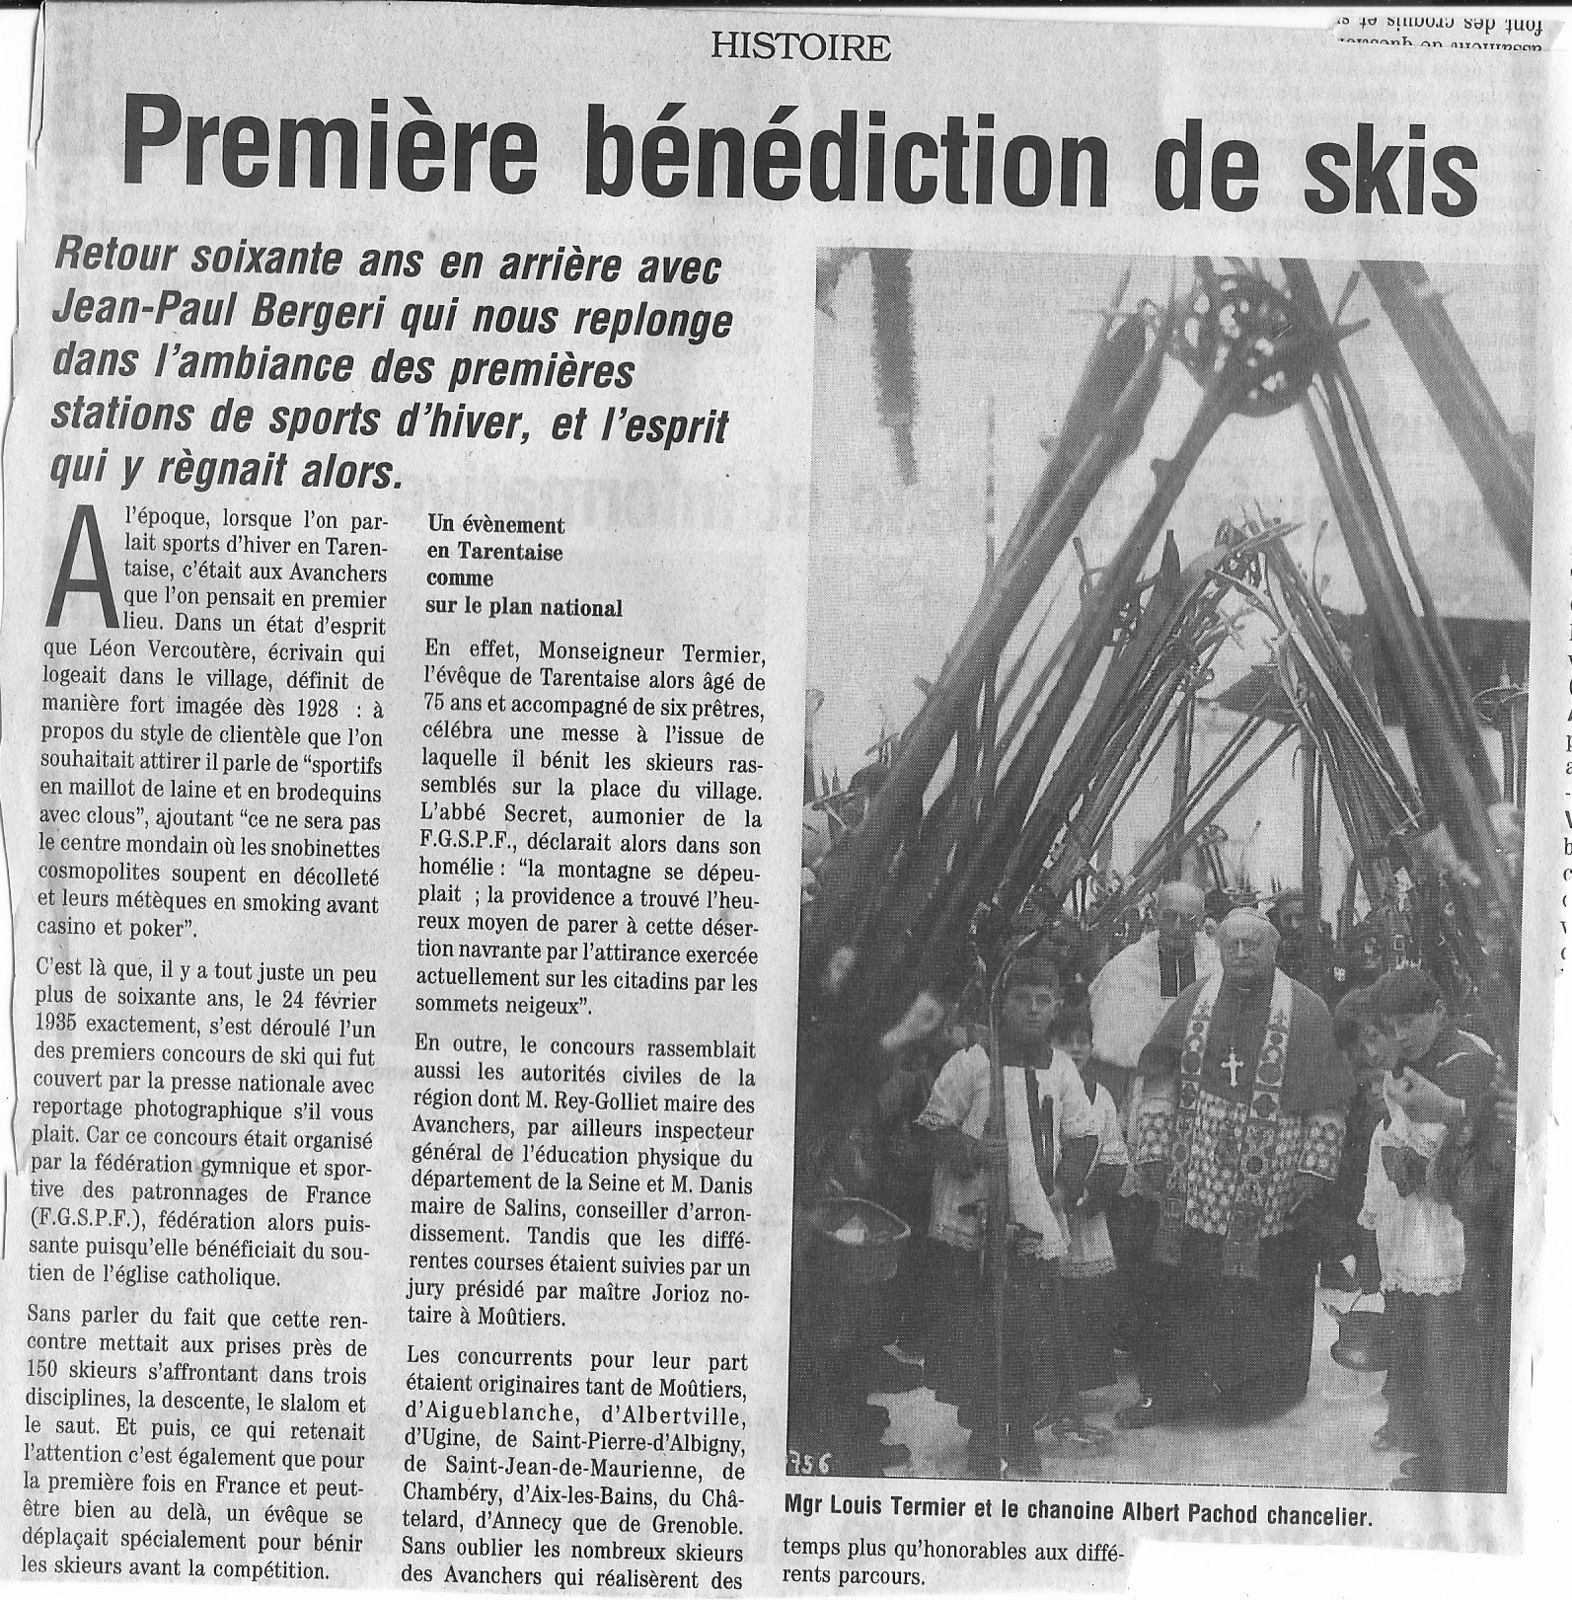 Benediction de skis